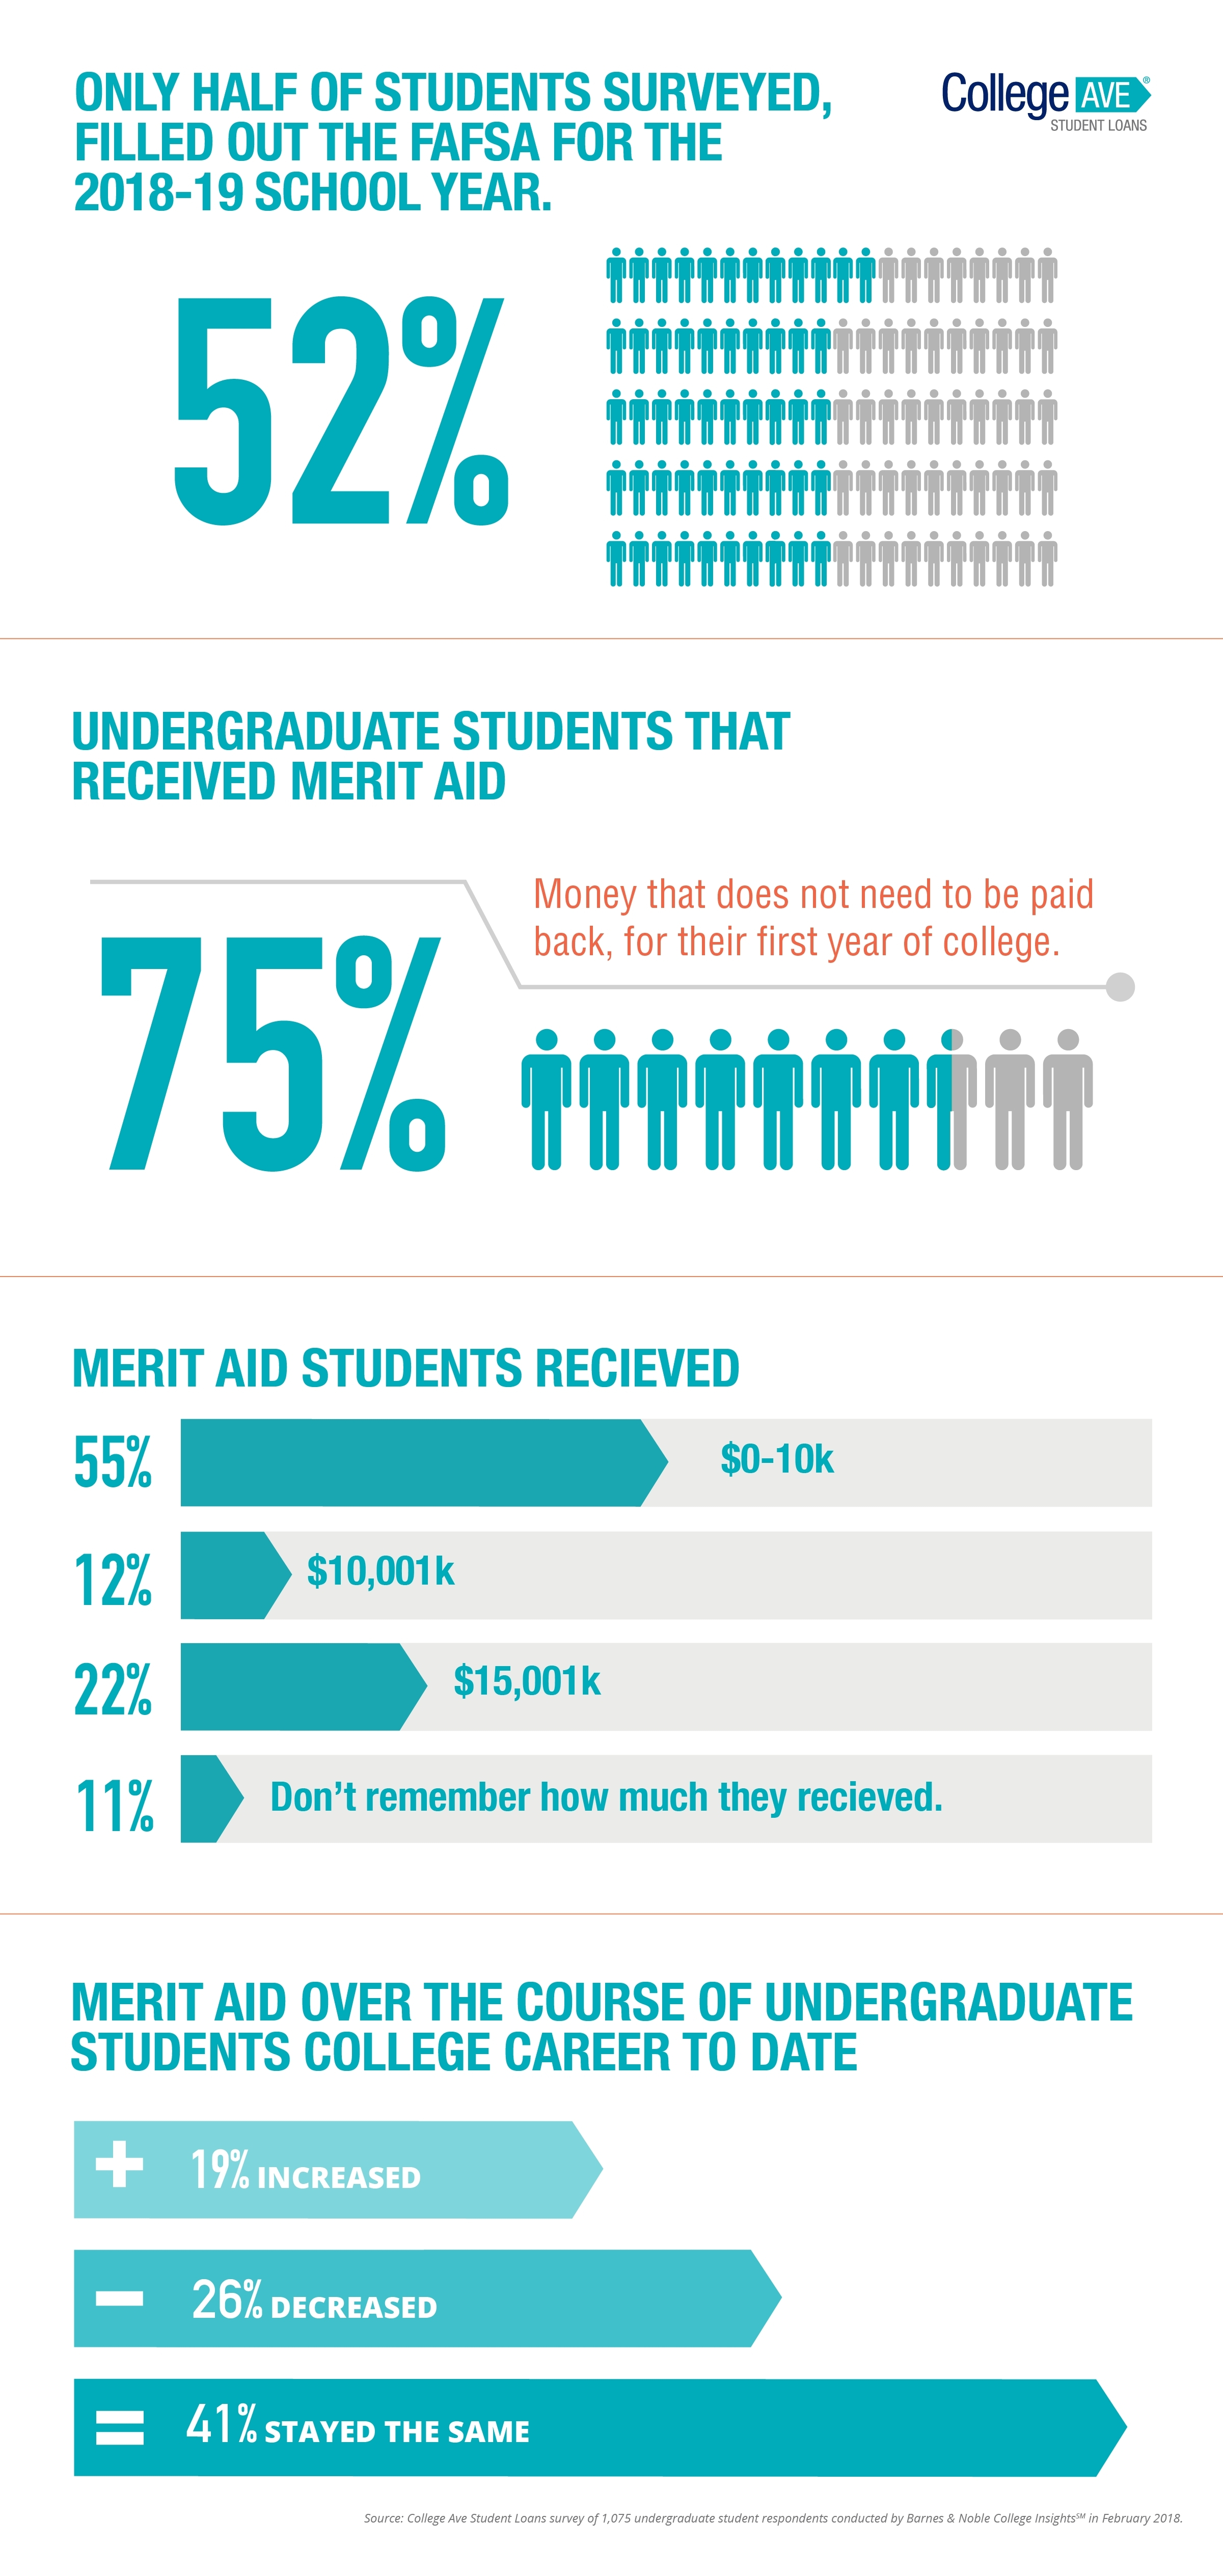 College Ave Student Loans Survey Finds College-Bound Students are ...